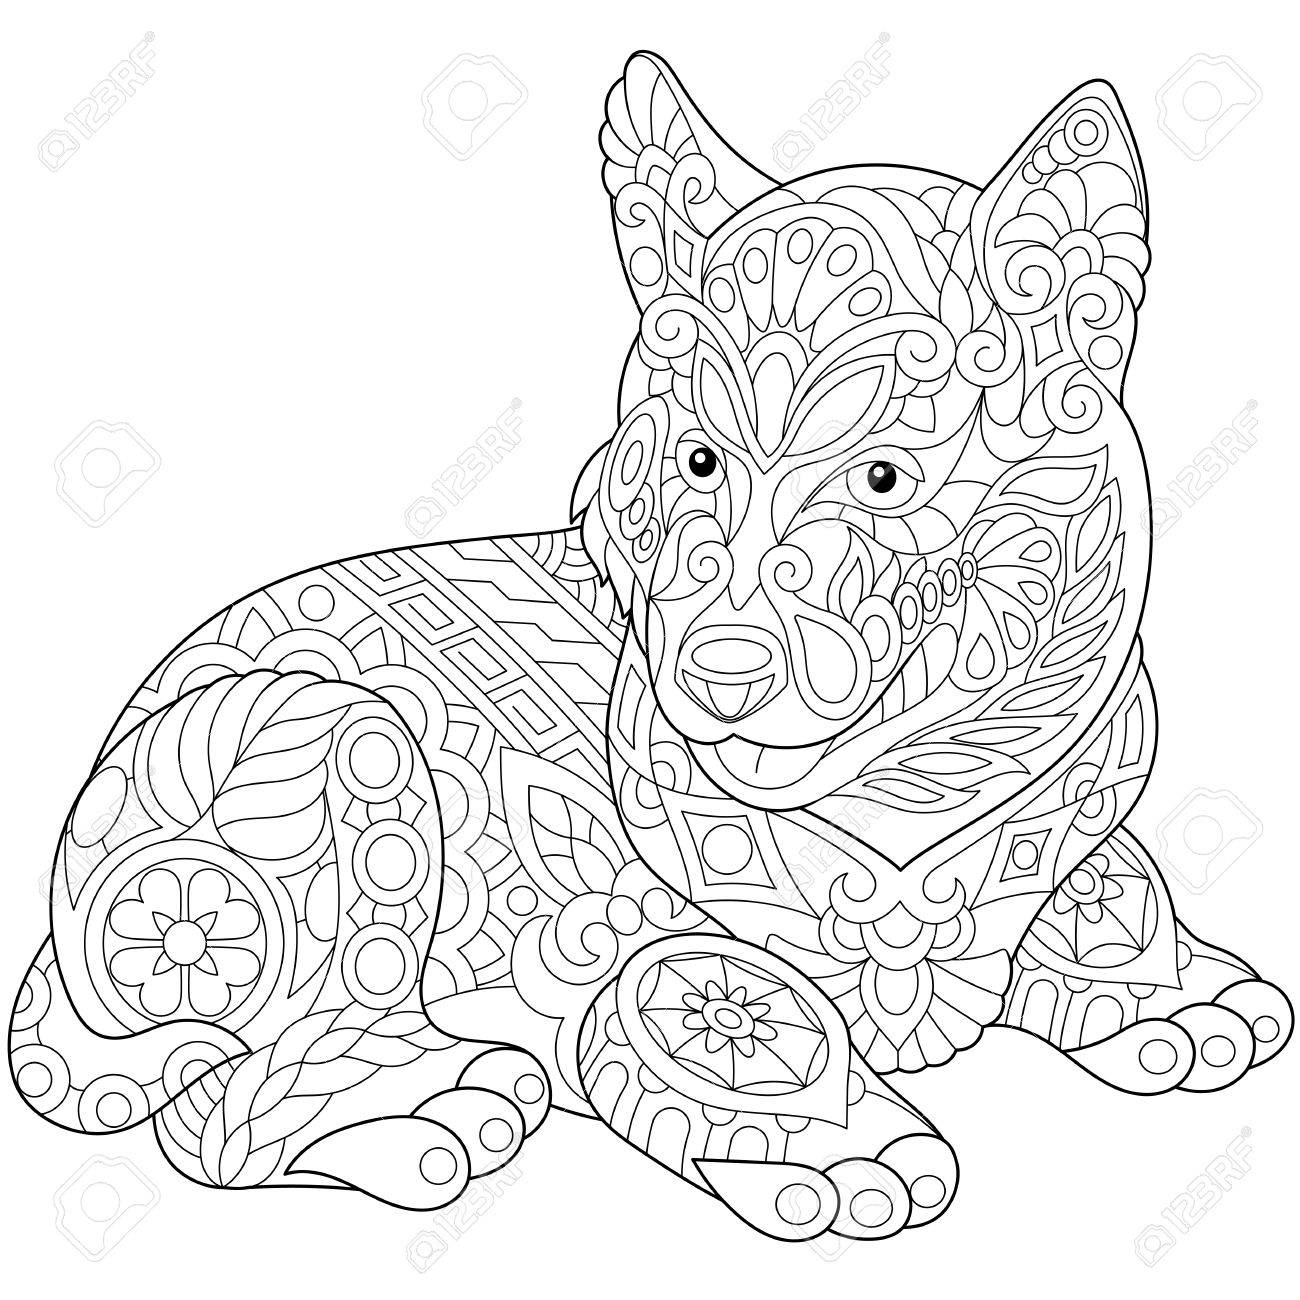 Stylized Cute Husky Dog Puppy Freehand Sketch For Adult Anti